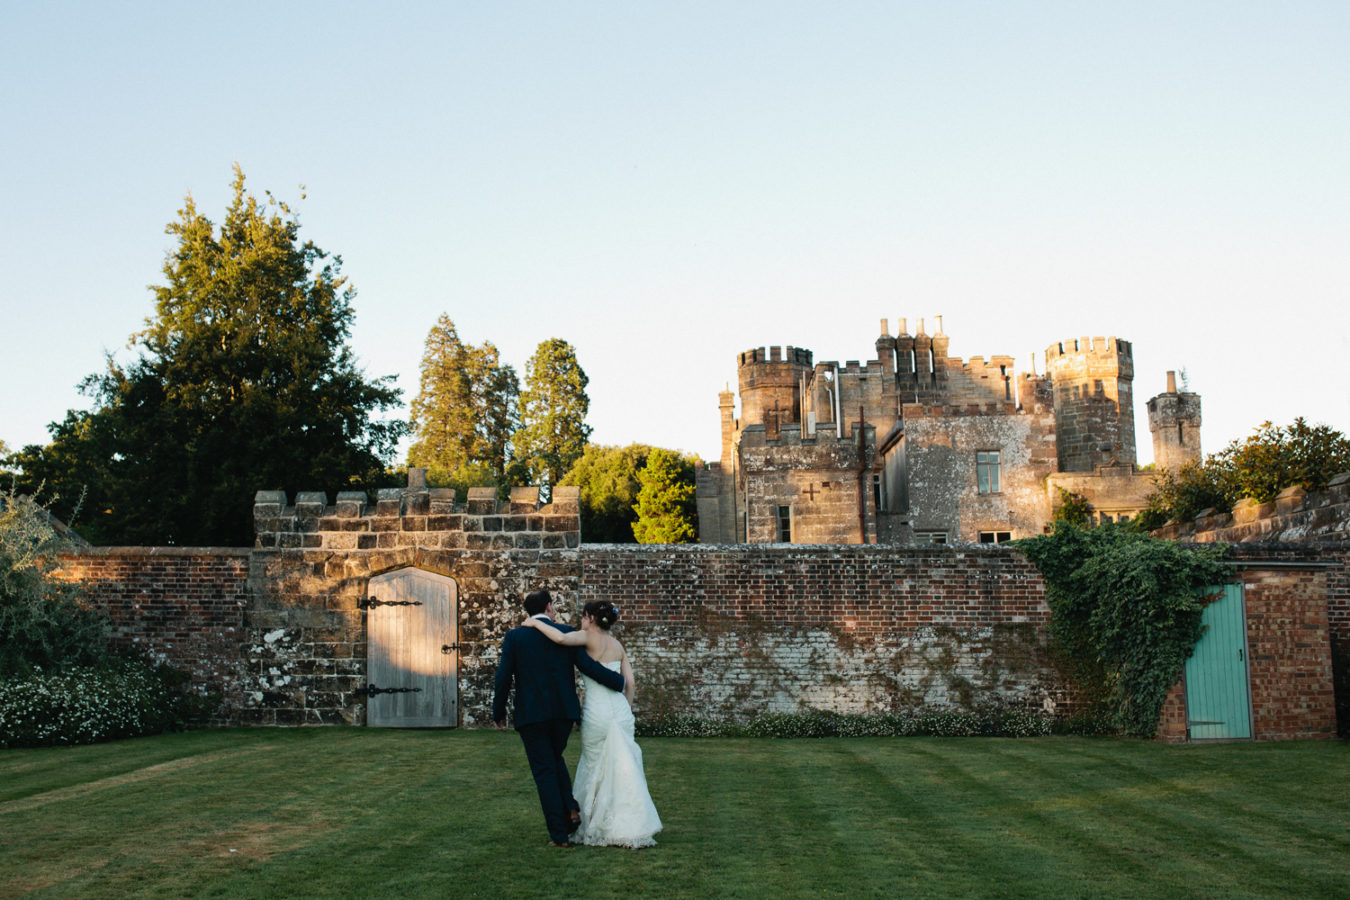 A bride and groom walking on the lawn at Wadhurst Castle